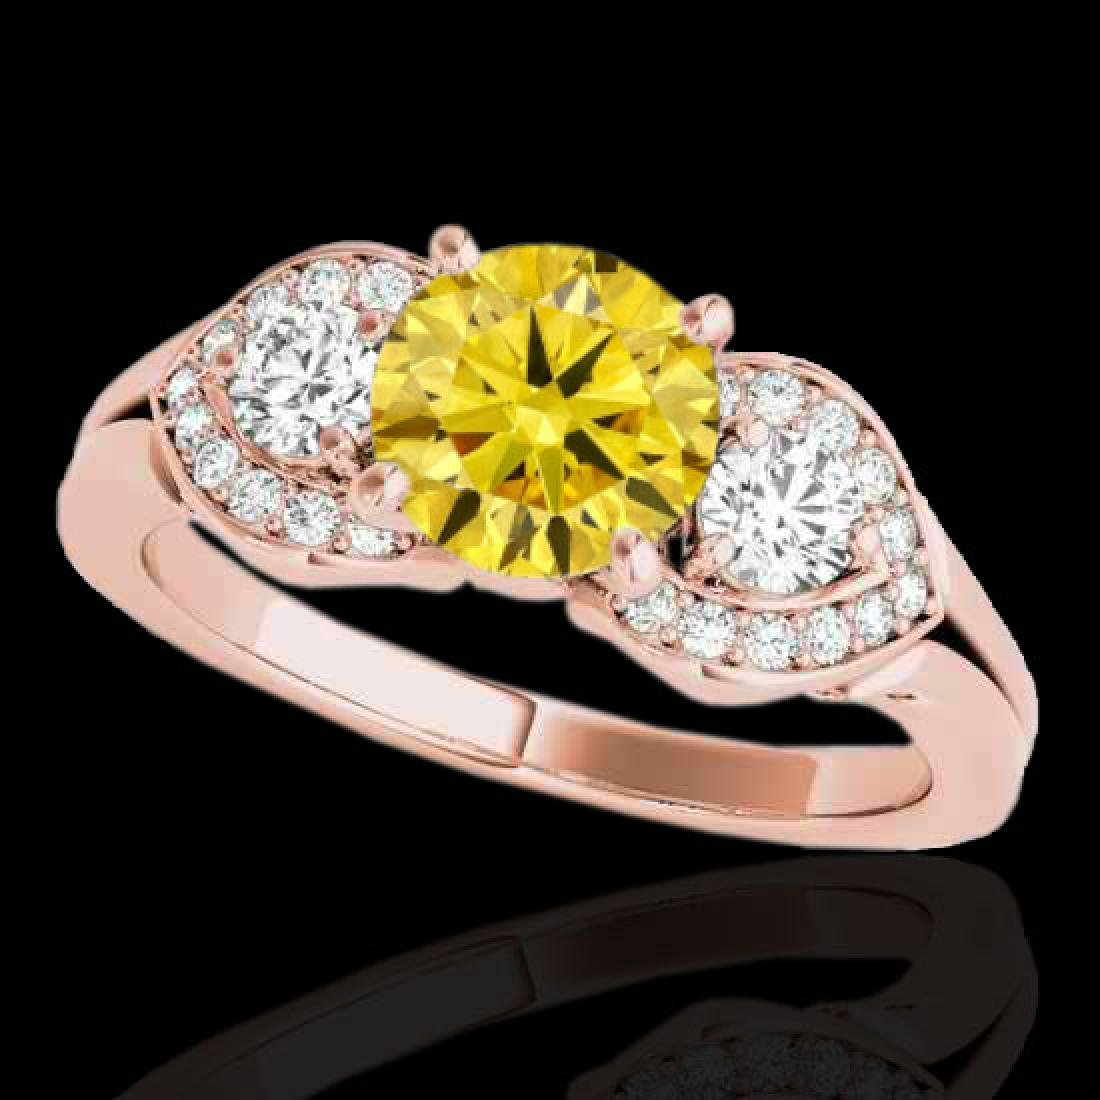 1.7 CTW Certified Si Intense Yellow Diamond 3 Stone